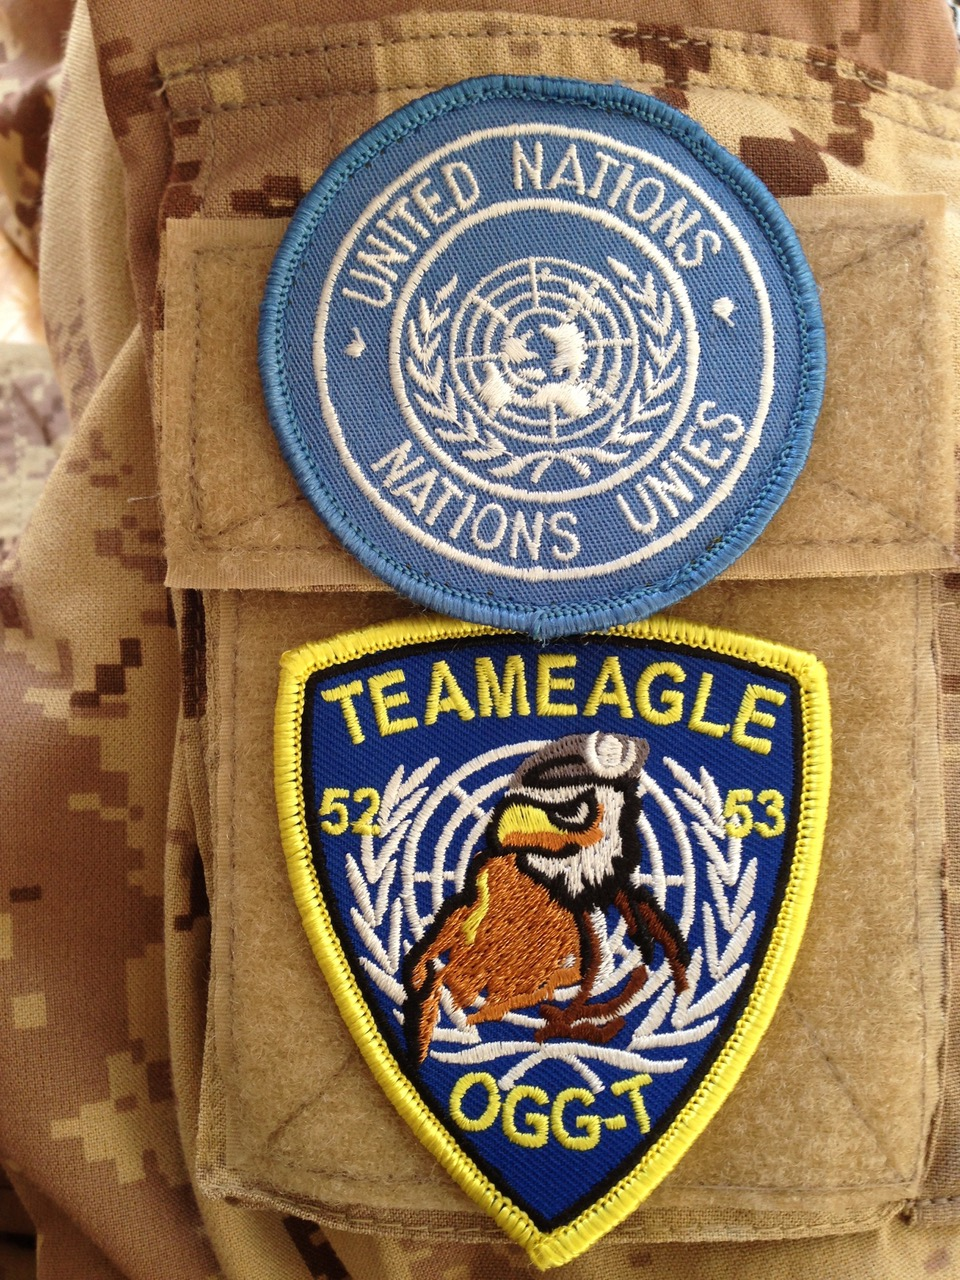 Golan Heights. Fall 2016 – The badges for the United Nations and Team Eagle, Observer Group Golan – Tiberias are on the arm of a United Nations Military Observer. (Photo by Major Adrian Fyfe, Operation JADE Task Force Commander)